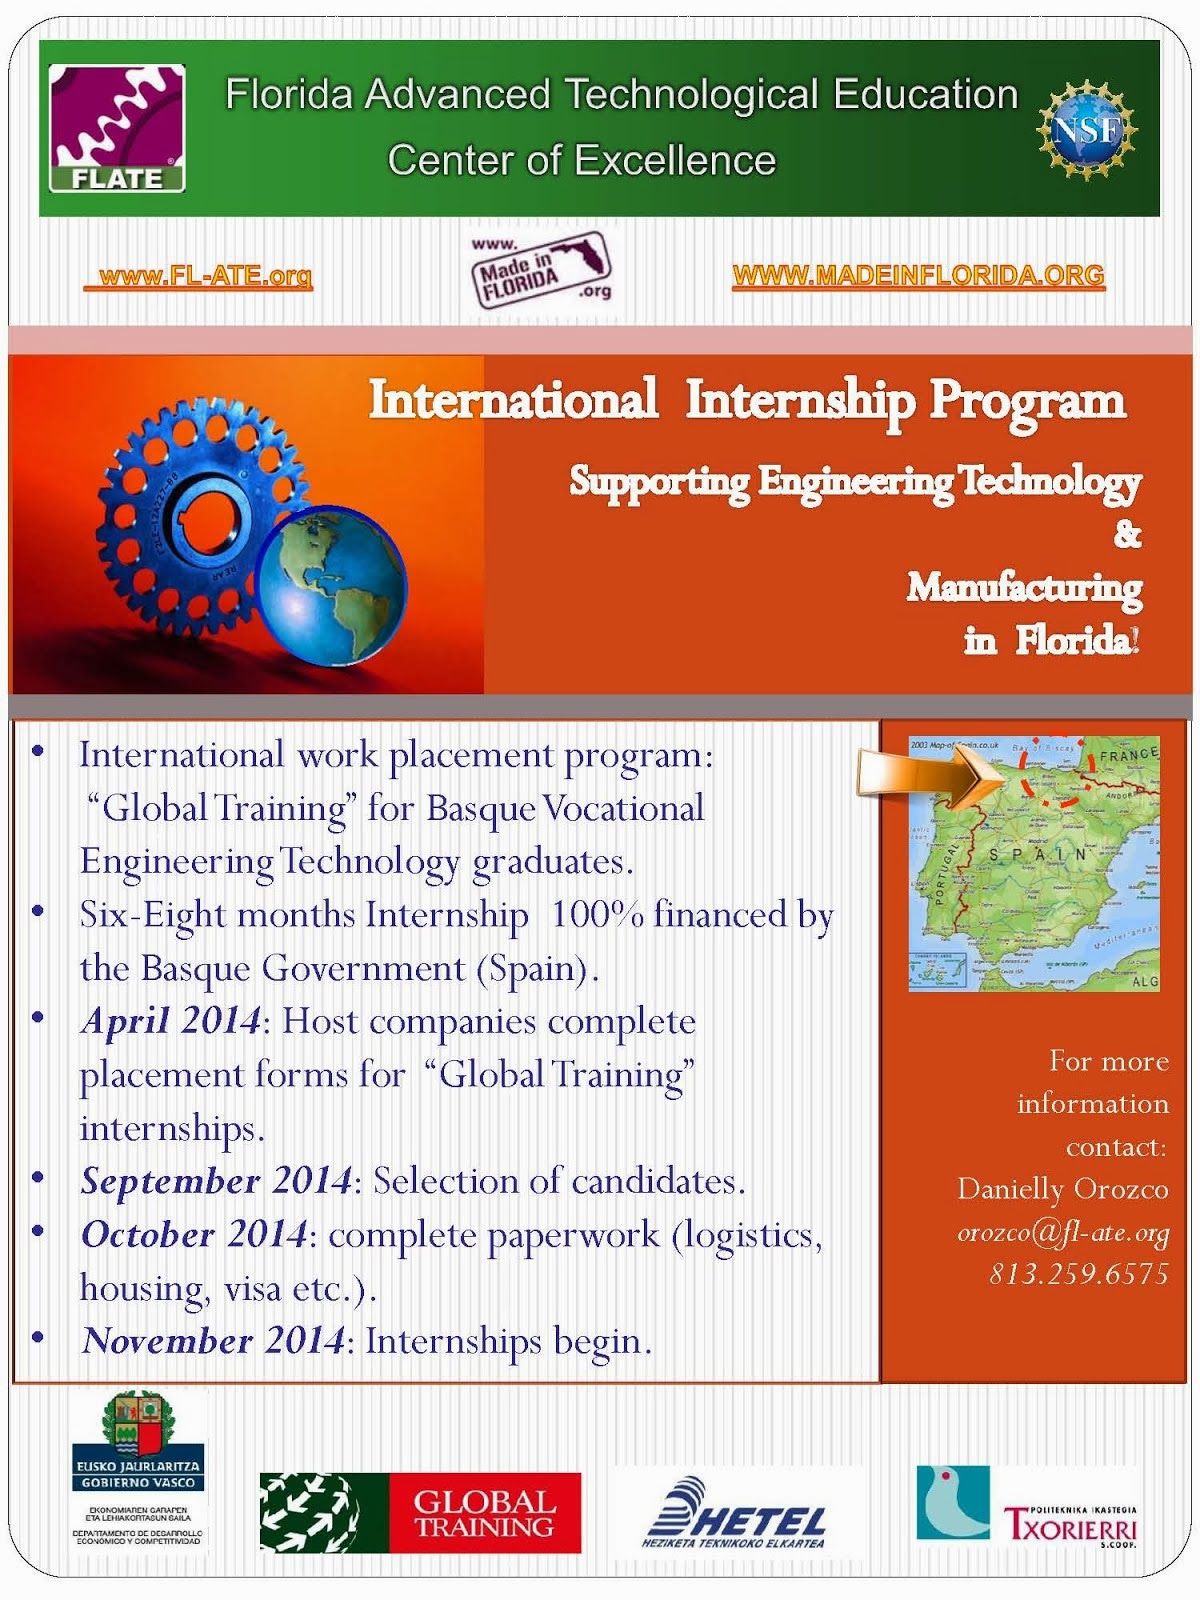 FLATE-HETEL Global Internship Program